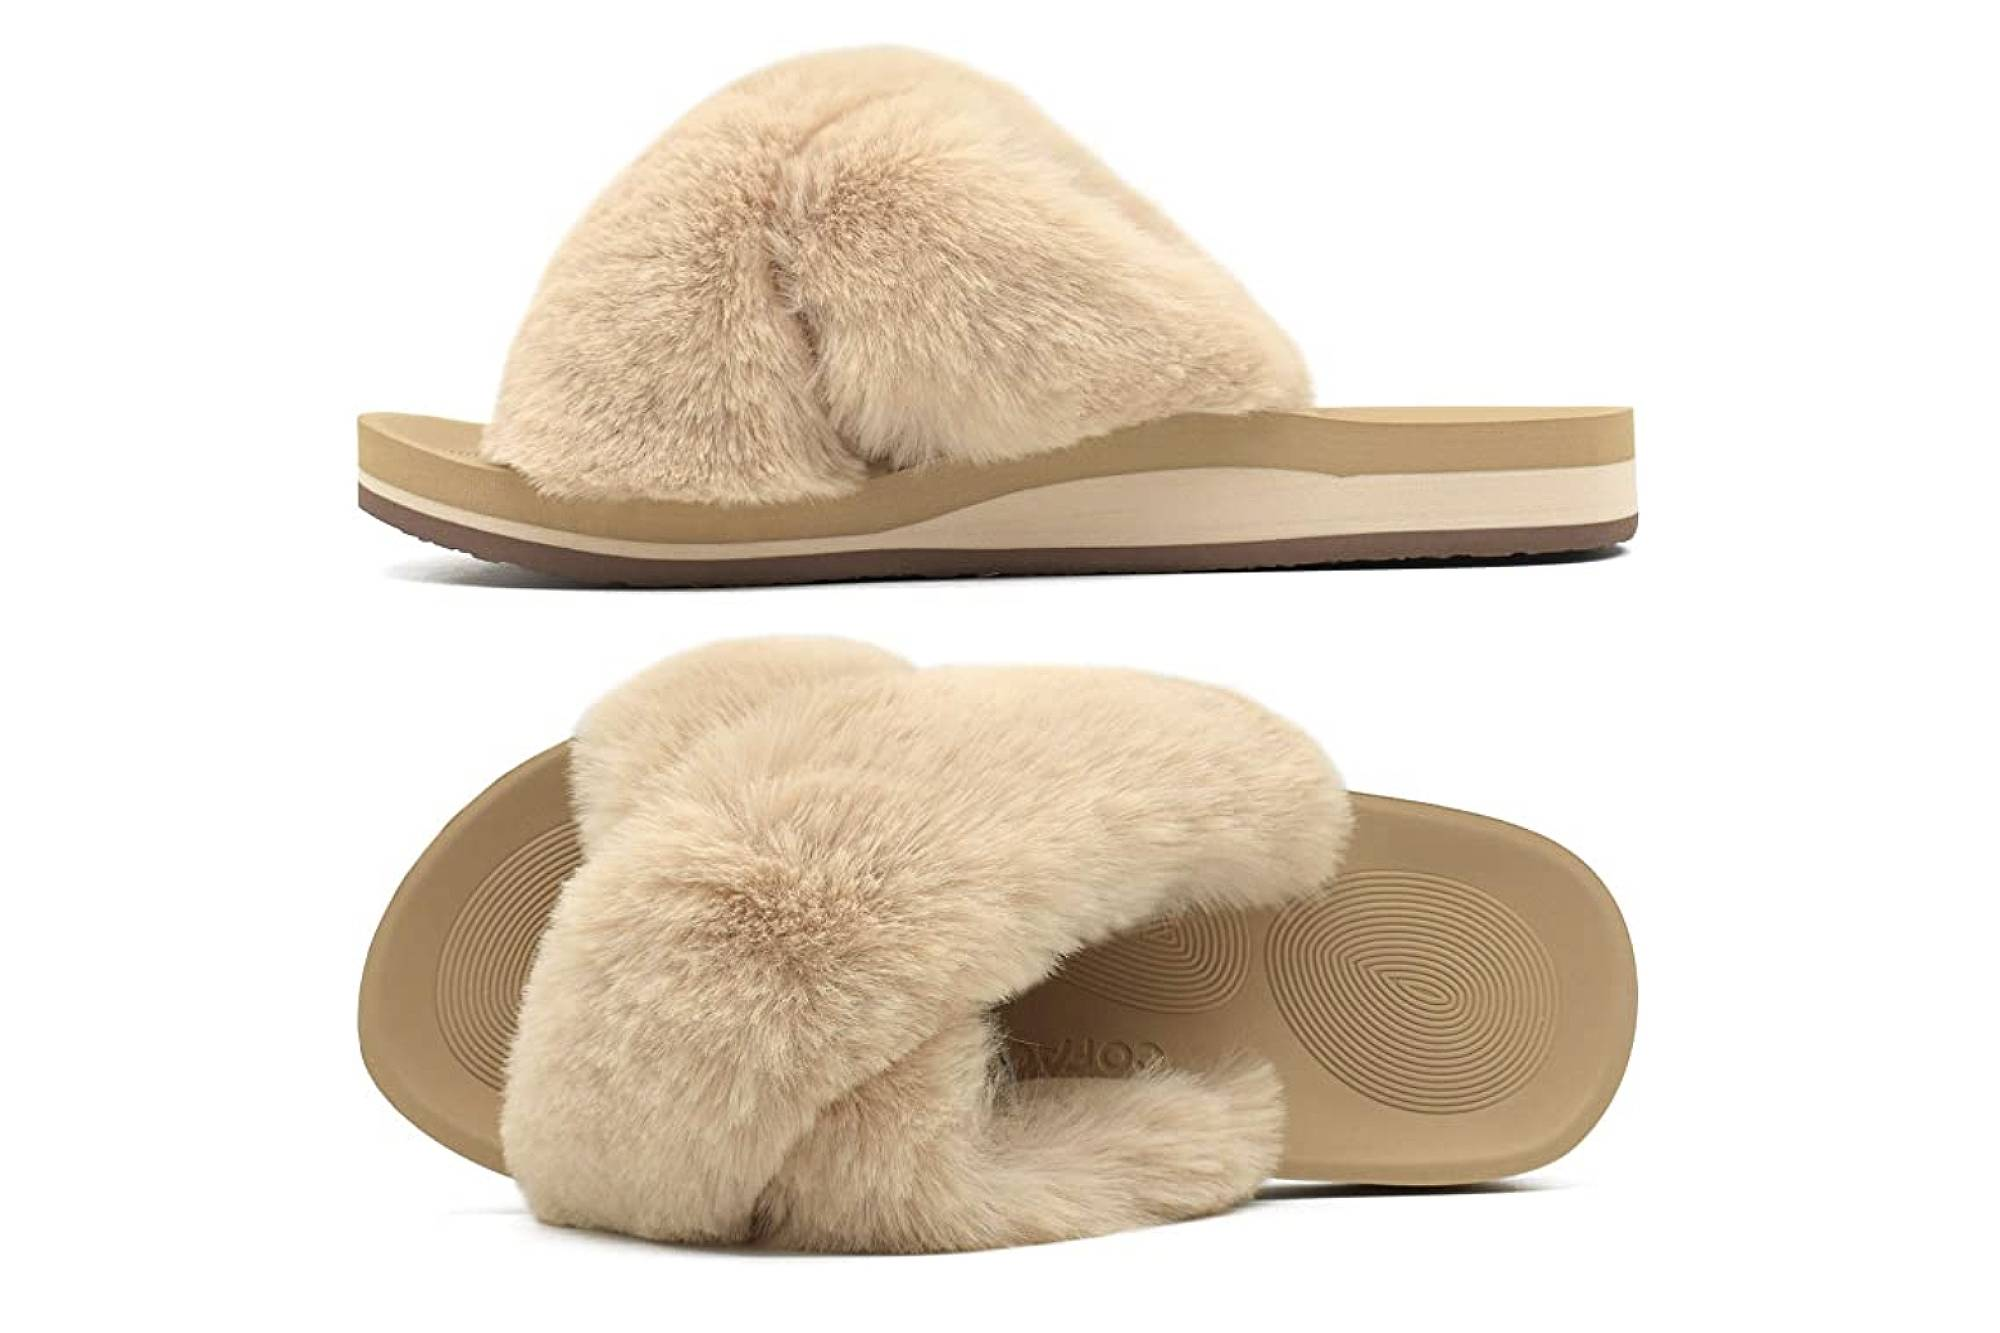 Coface Fuzzy Slippers Are Comfy and